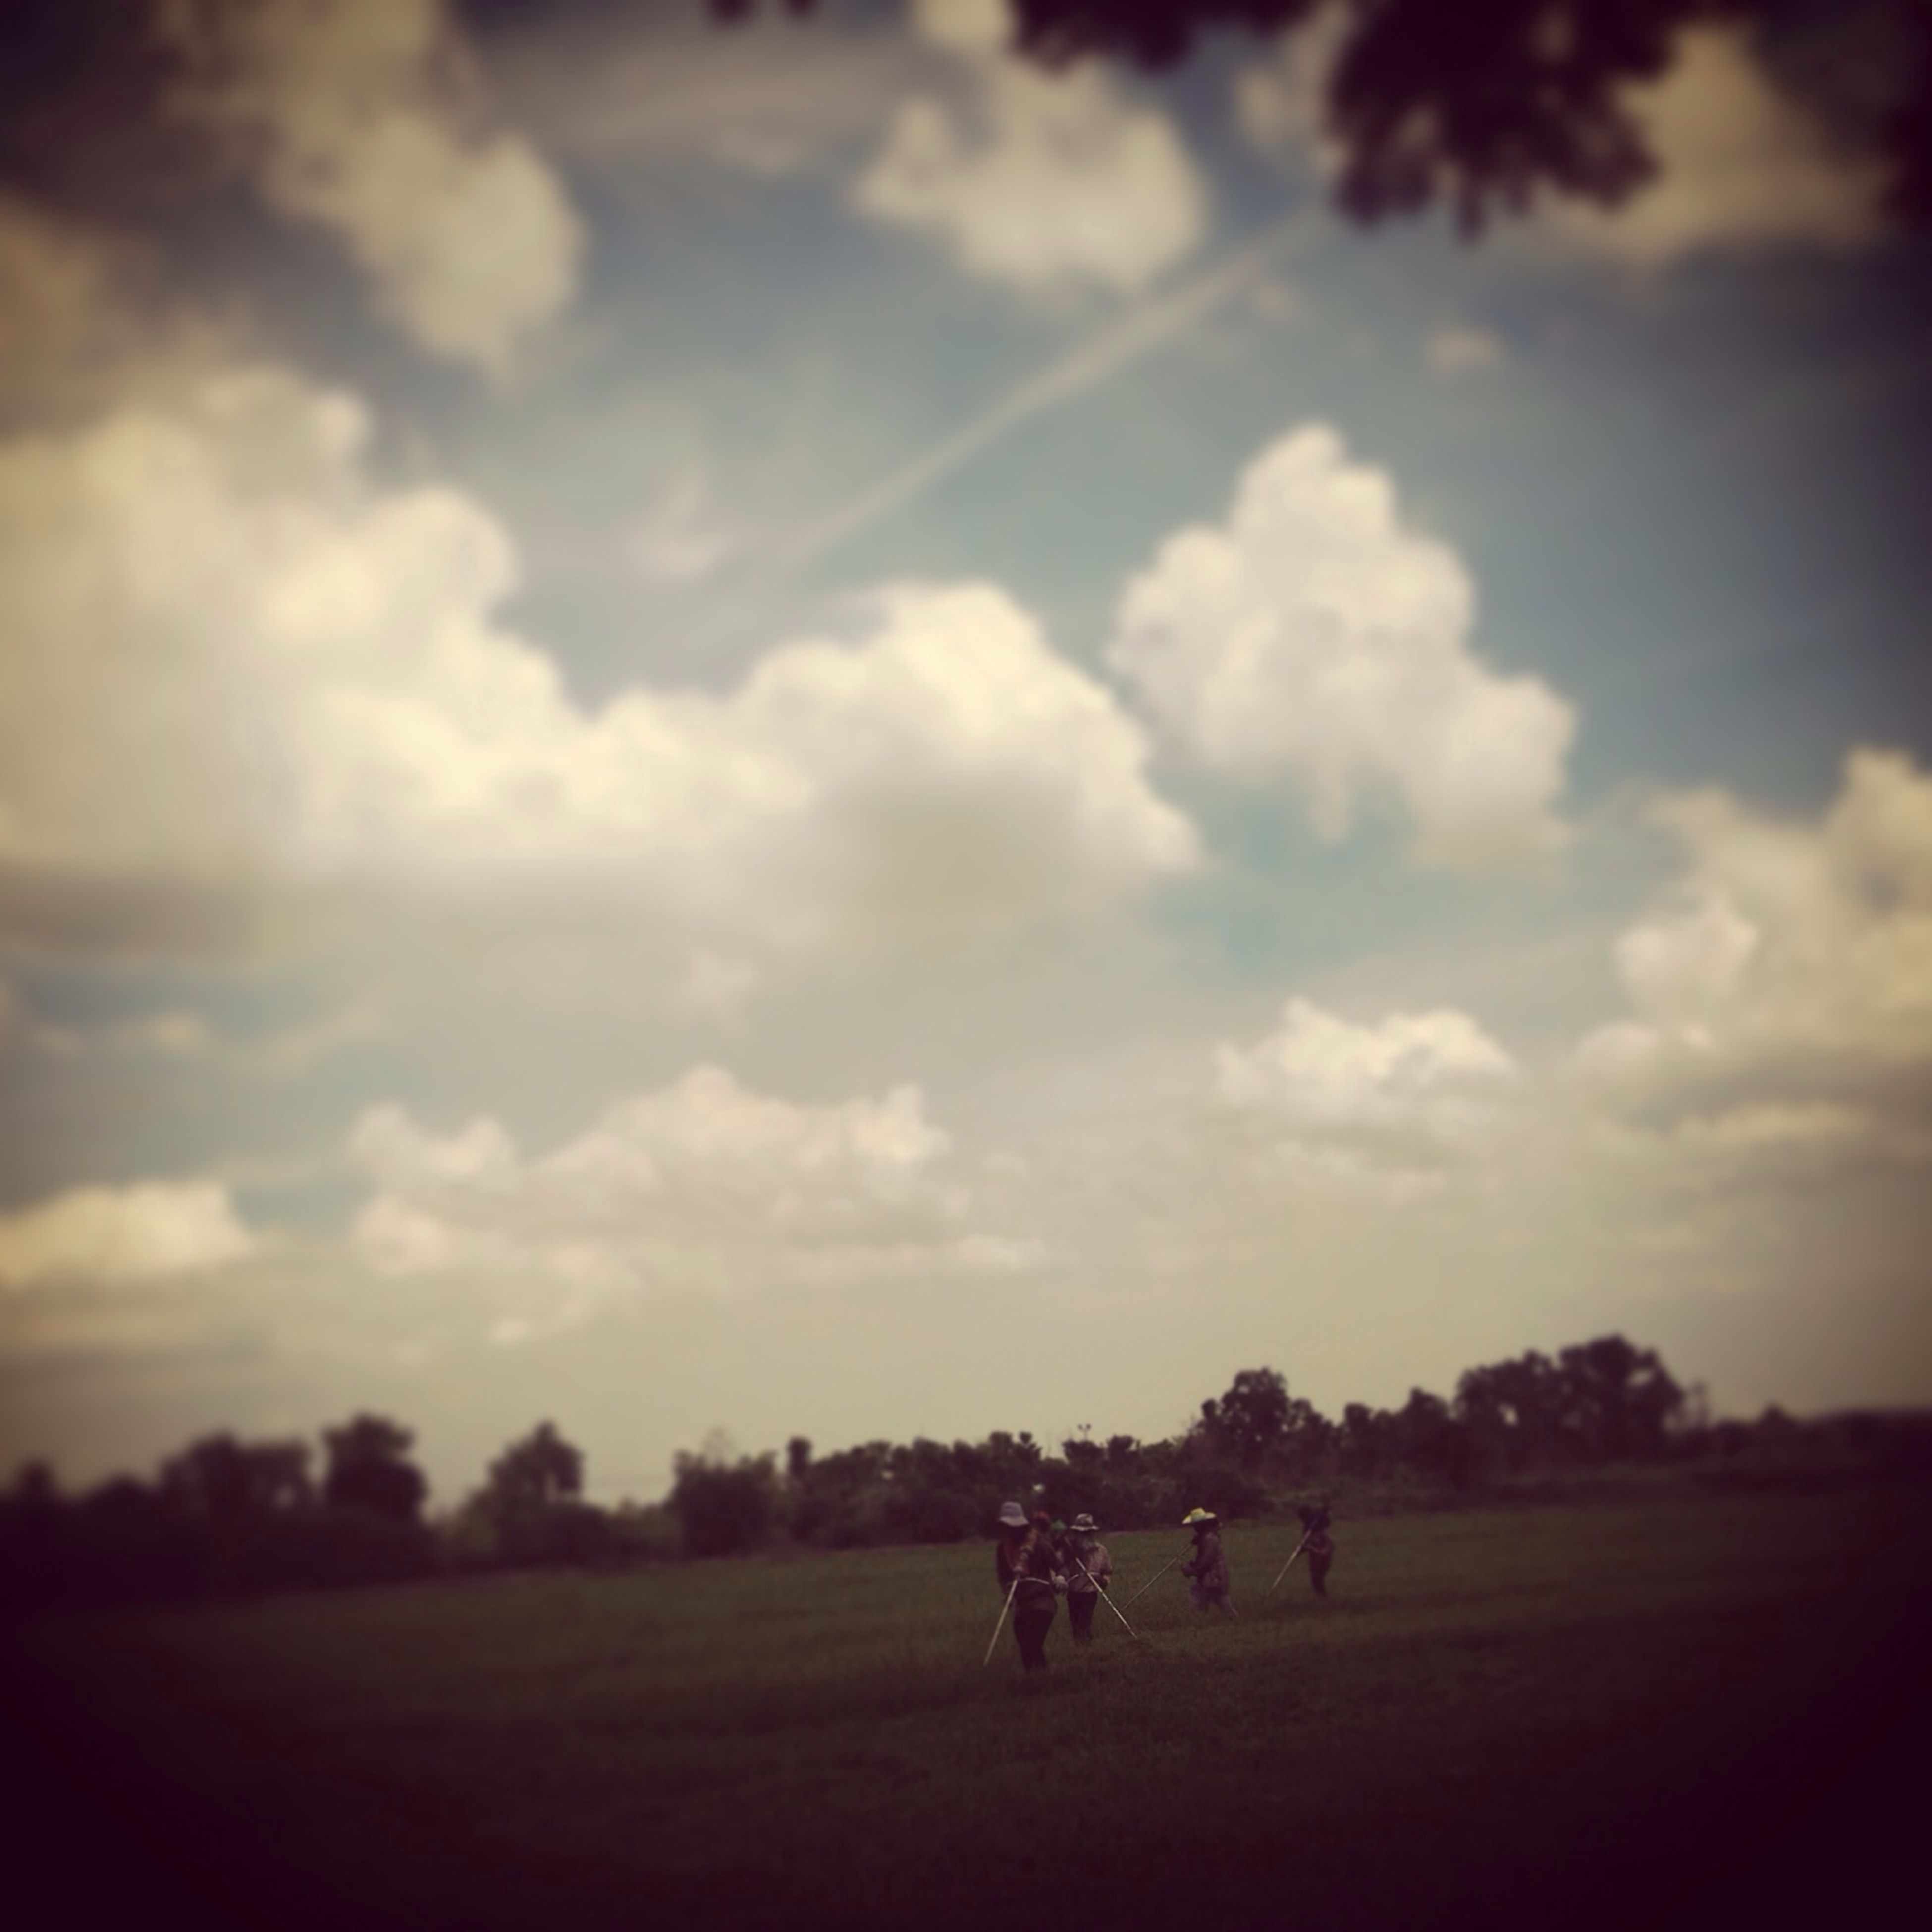 grass, sky, field, leisure activity, lifestyles, tree, men, cloud - sky, landscape, grassy, nature, tranquil scene, tranquility, person, togetherness, beauty in nature, scenics, cloud